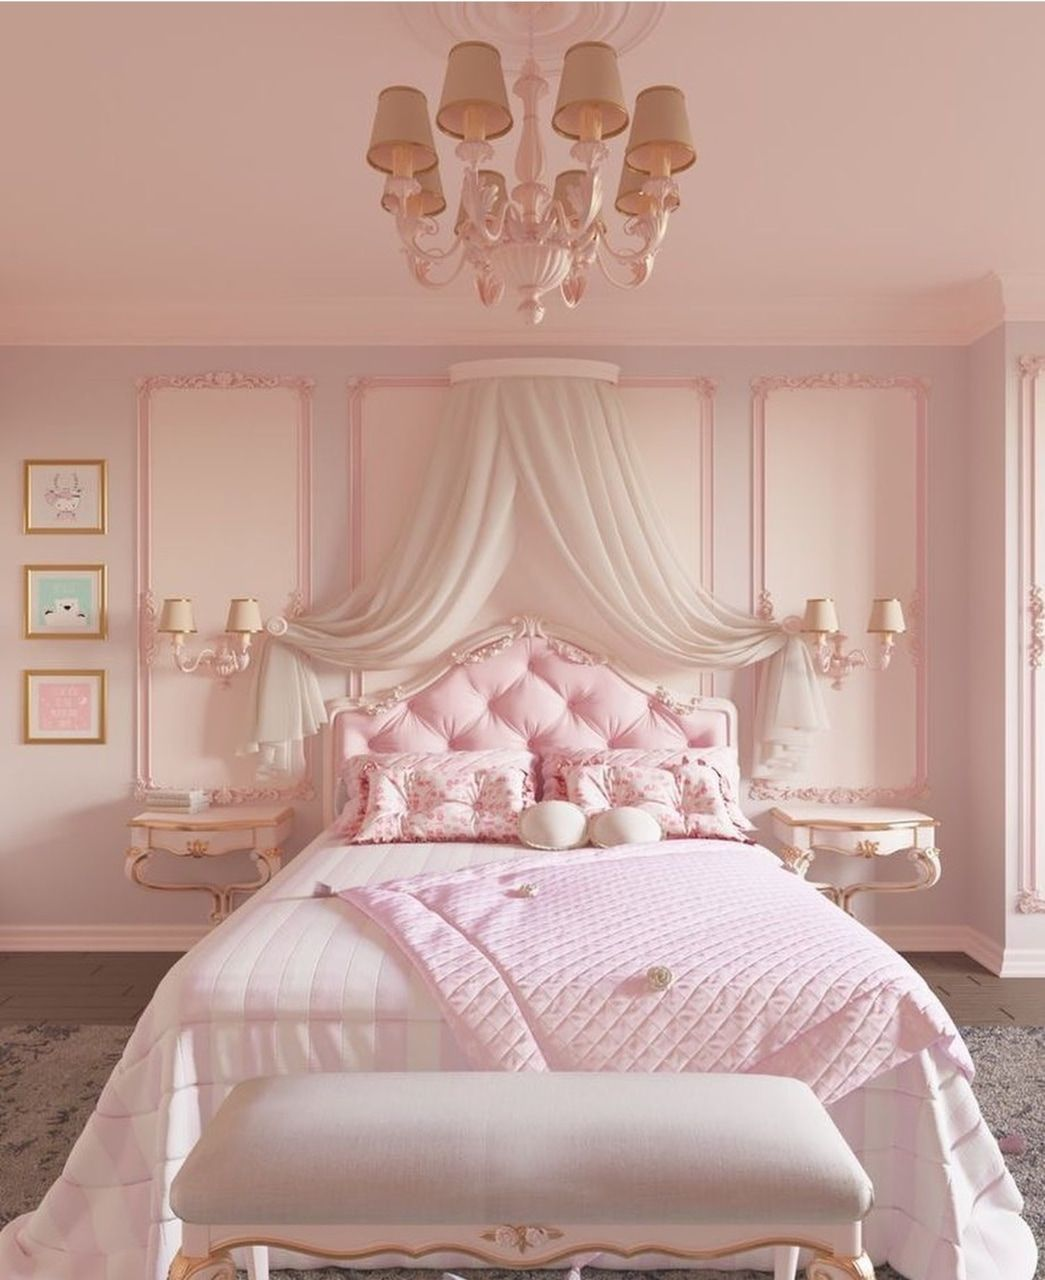 Image Shared By Pink Rose Find Images And Videos About Pink Vintage And Girly On We Heart It The App Pink Bedroom Decor Luxurious Bedrooms Bedroom Interior